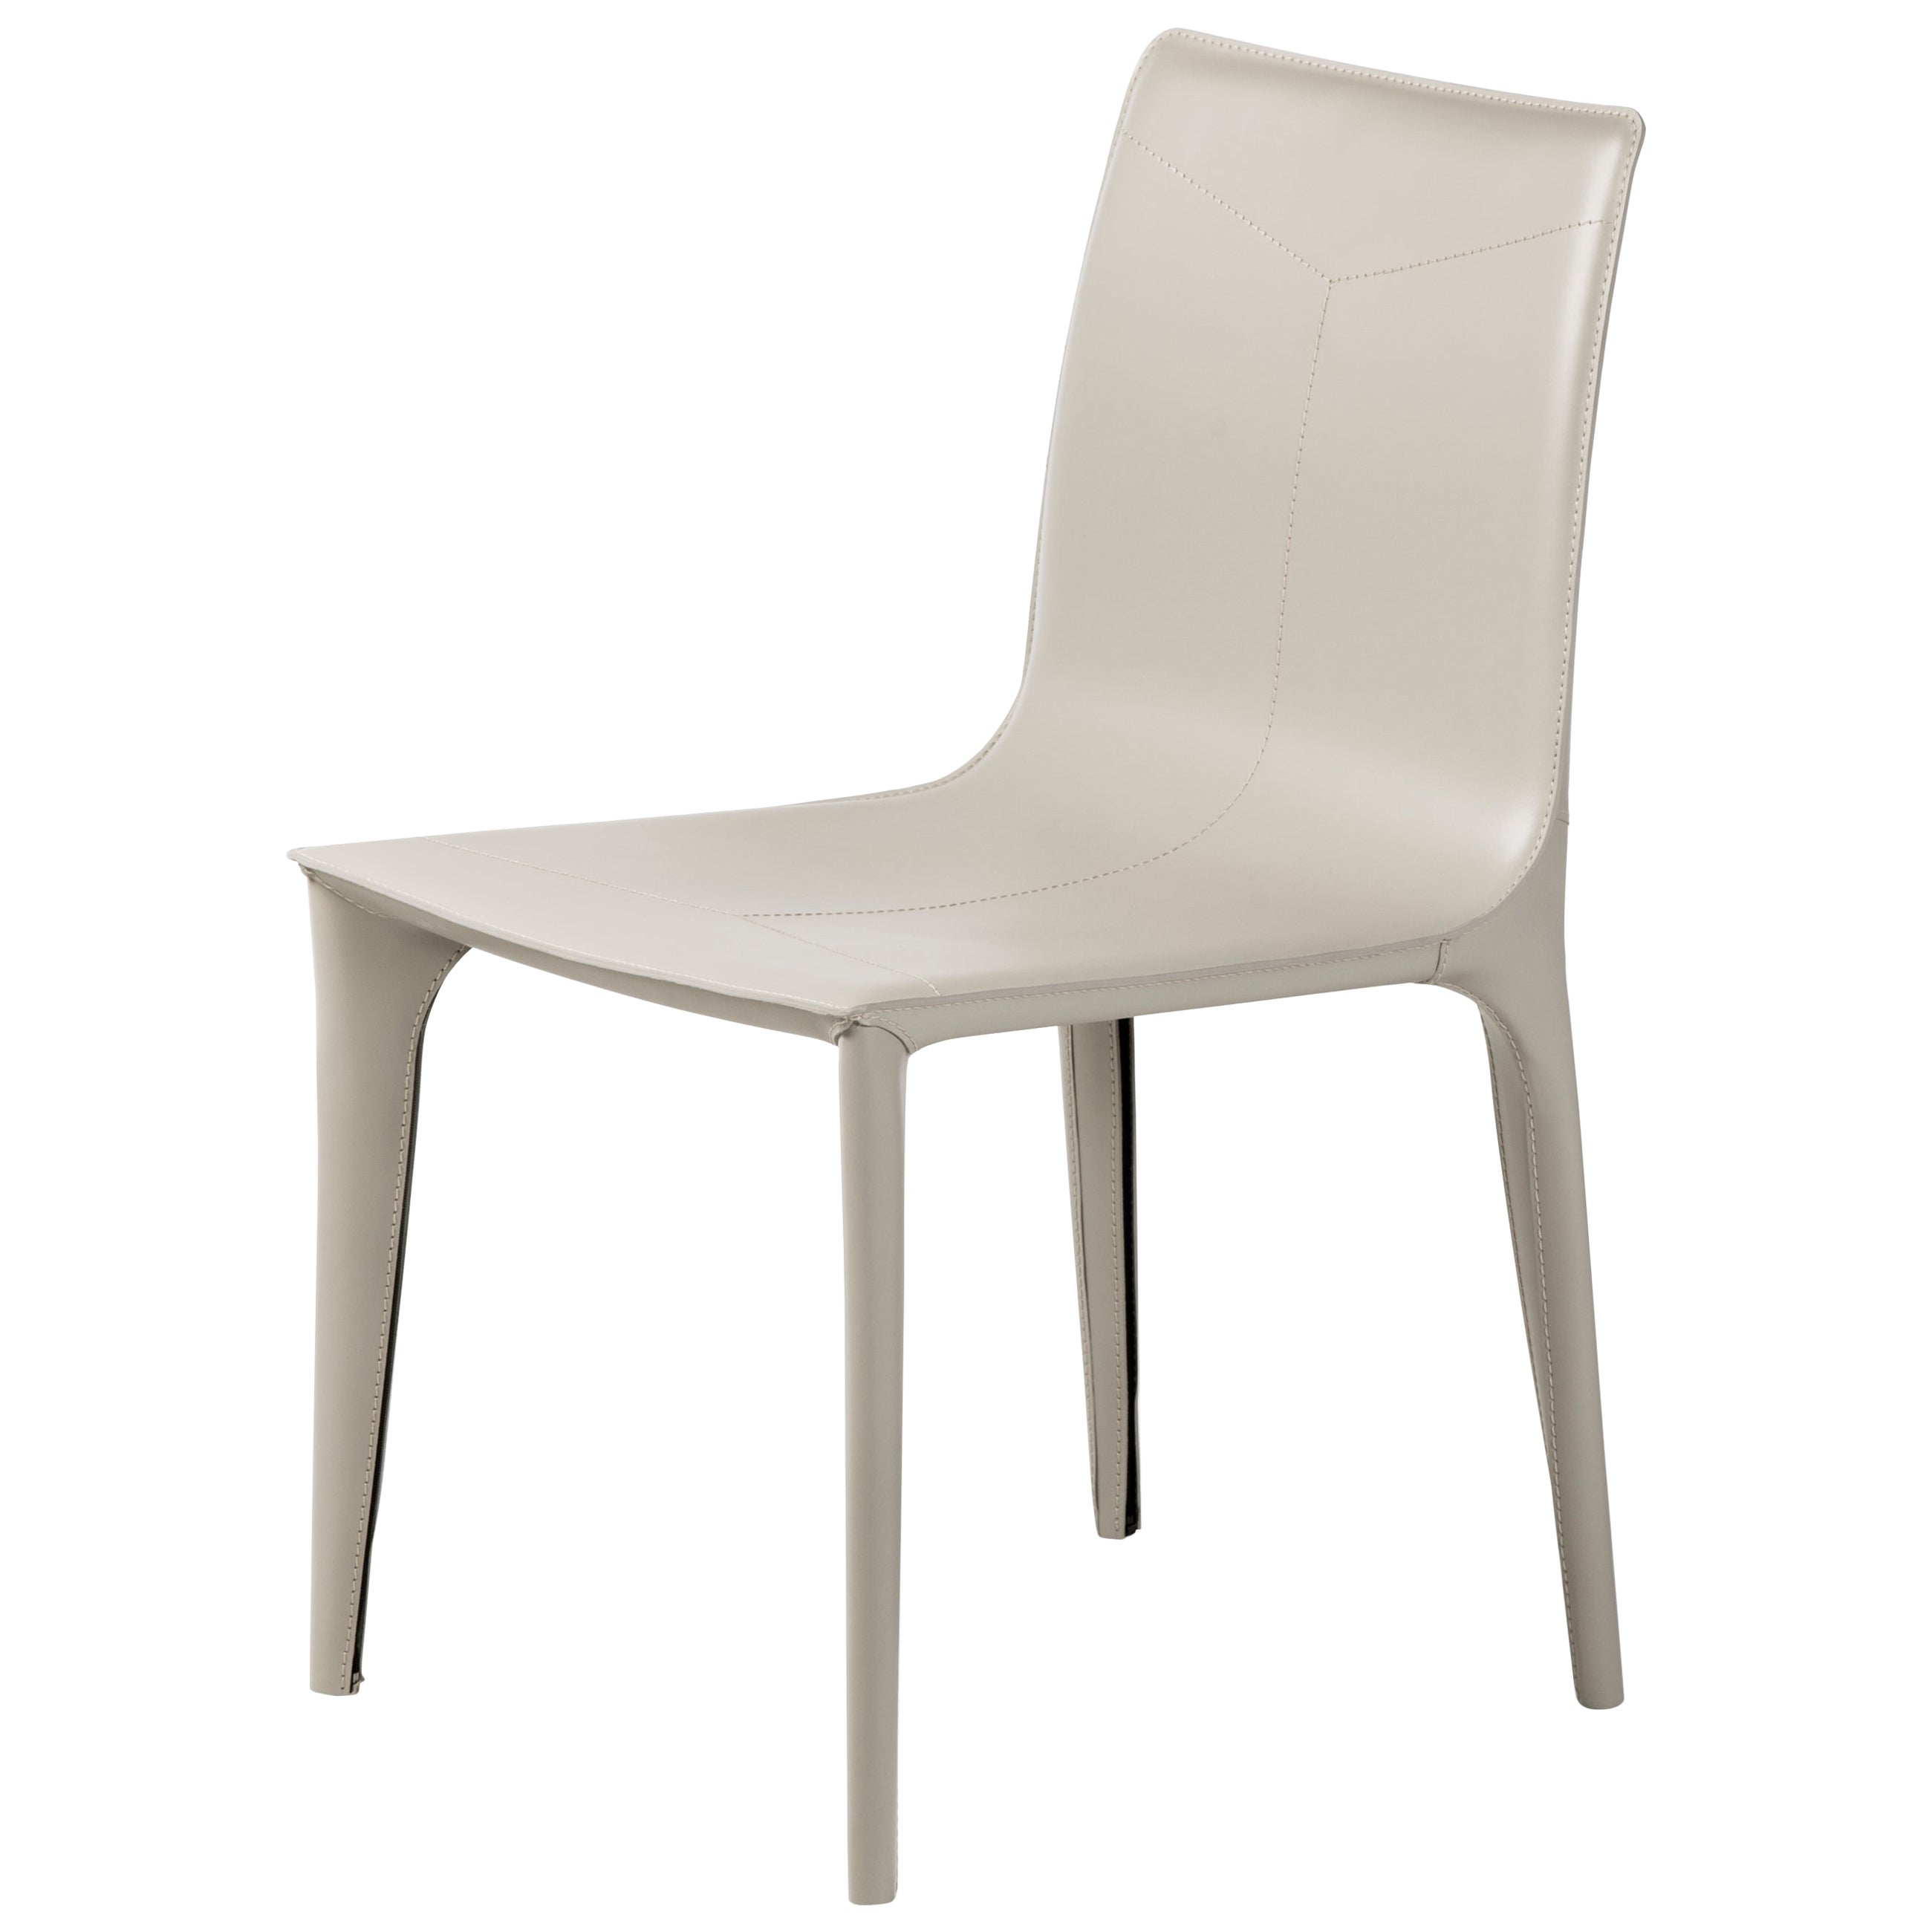 HOLLY HUNT Adriatic Dining Side Chair in Leather Ice Grey Finish